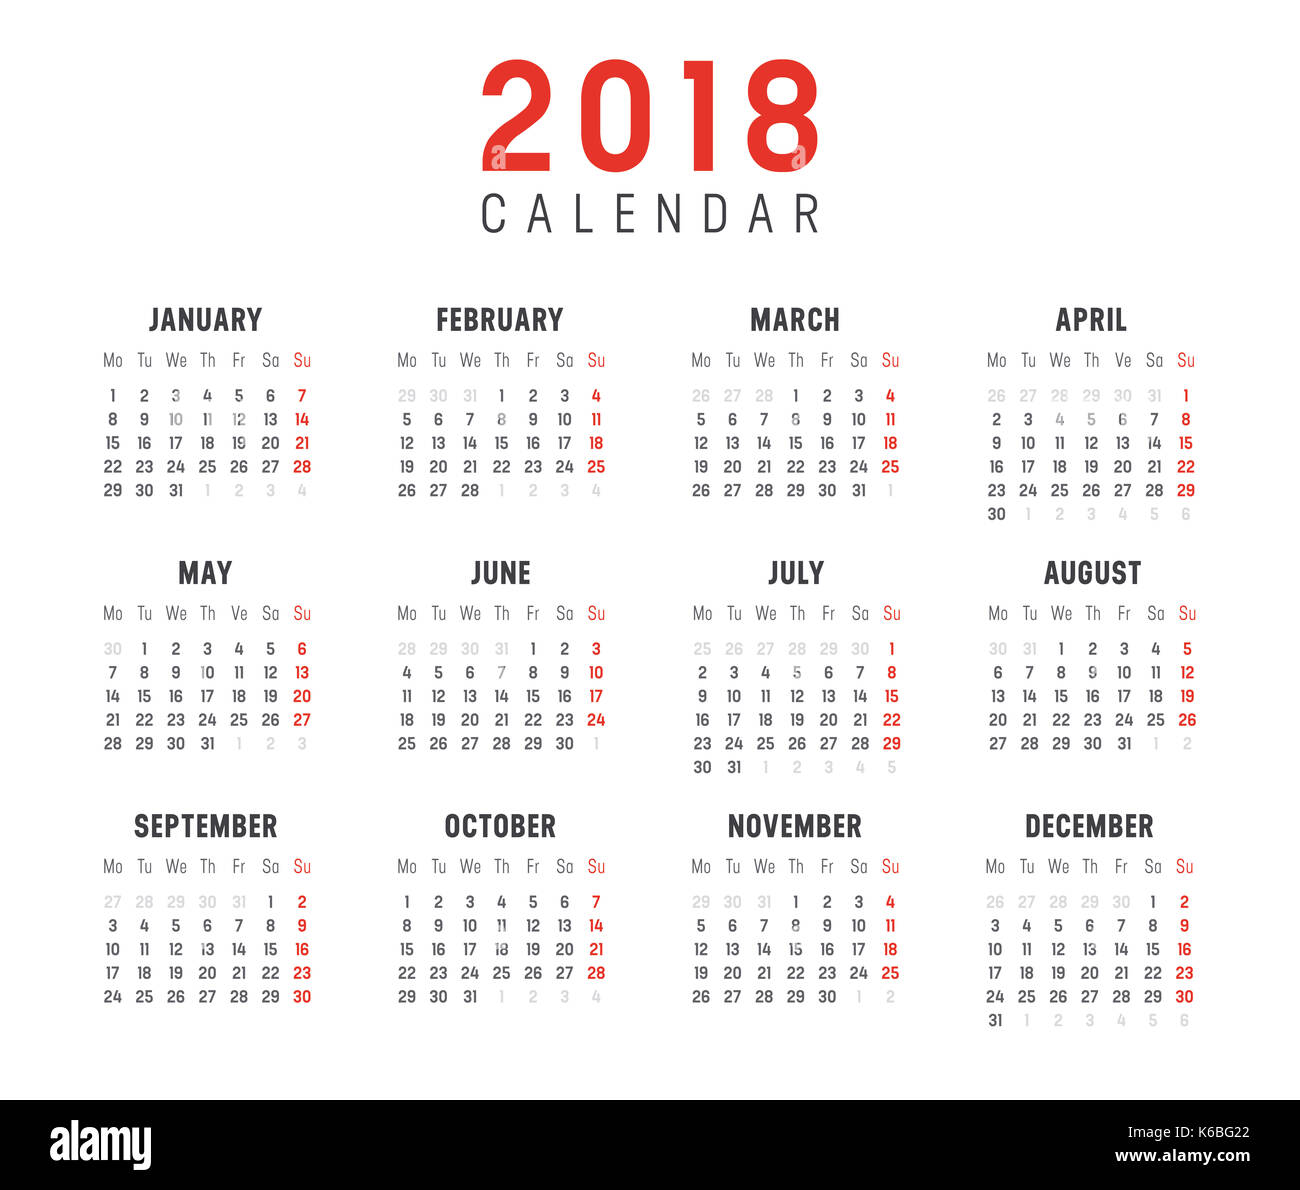 Minimalist Calendar Template : Stock photos images alamy